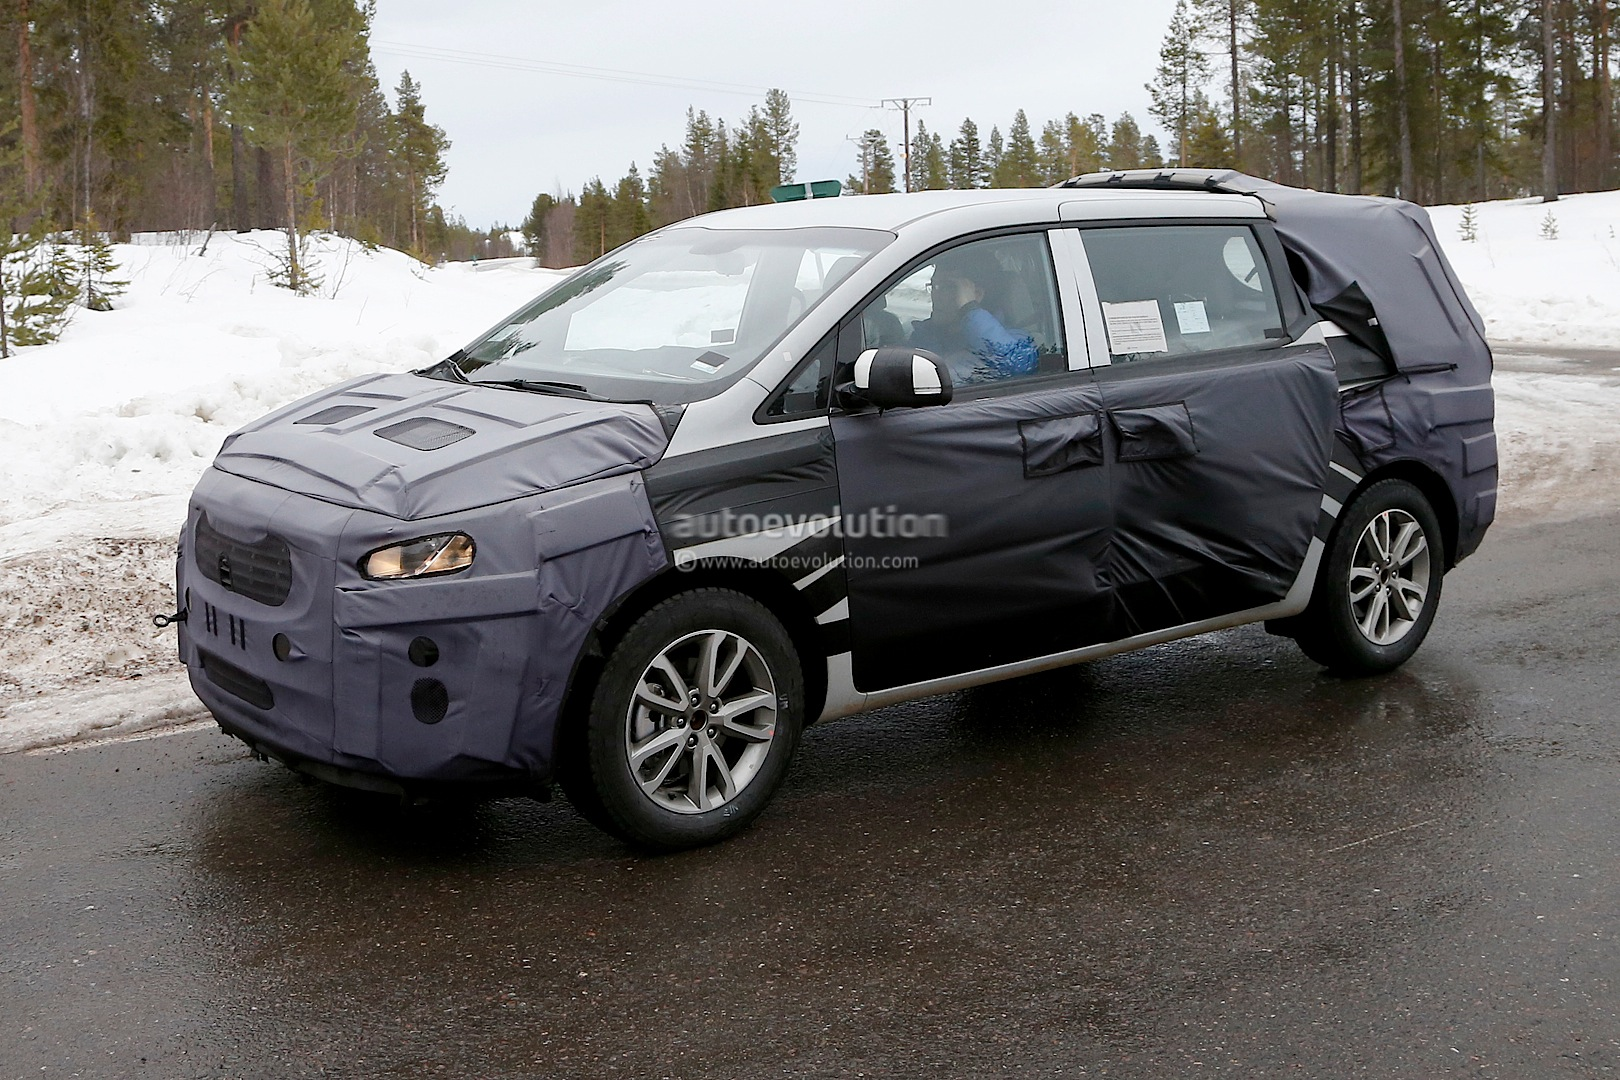 spyshots 2015 kia sedona carnival could debut next month7 photos 2015 kia sedona